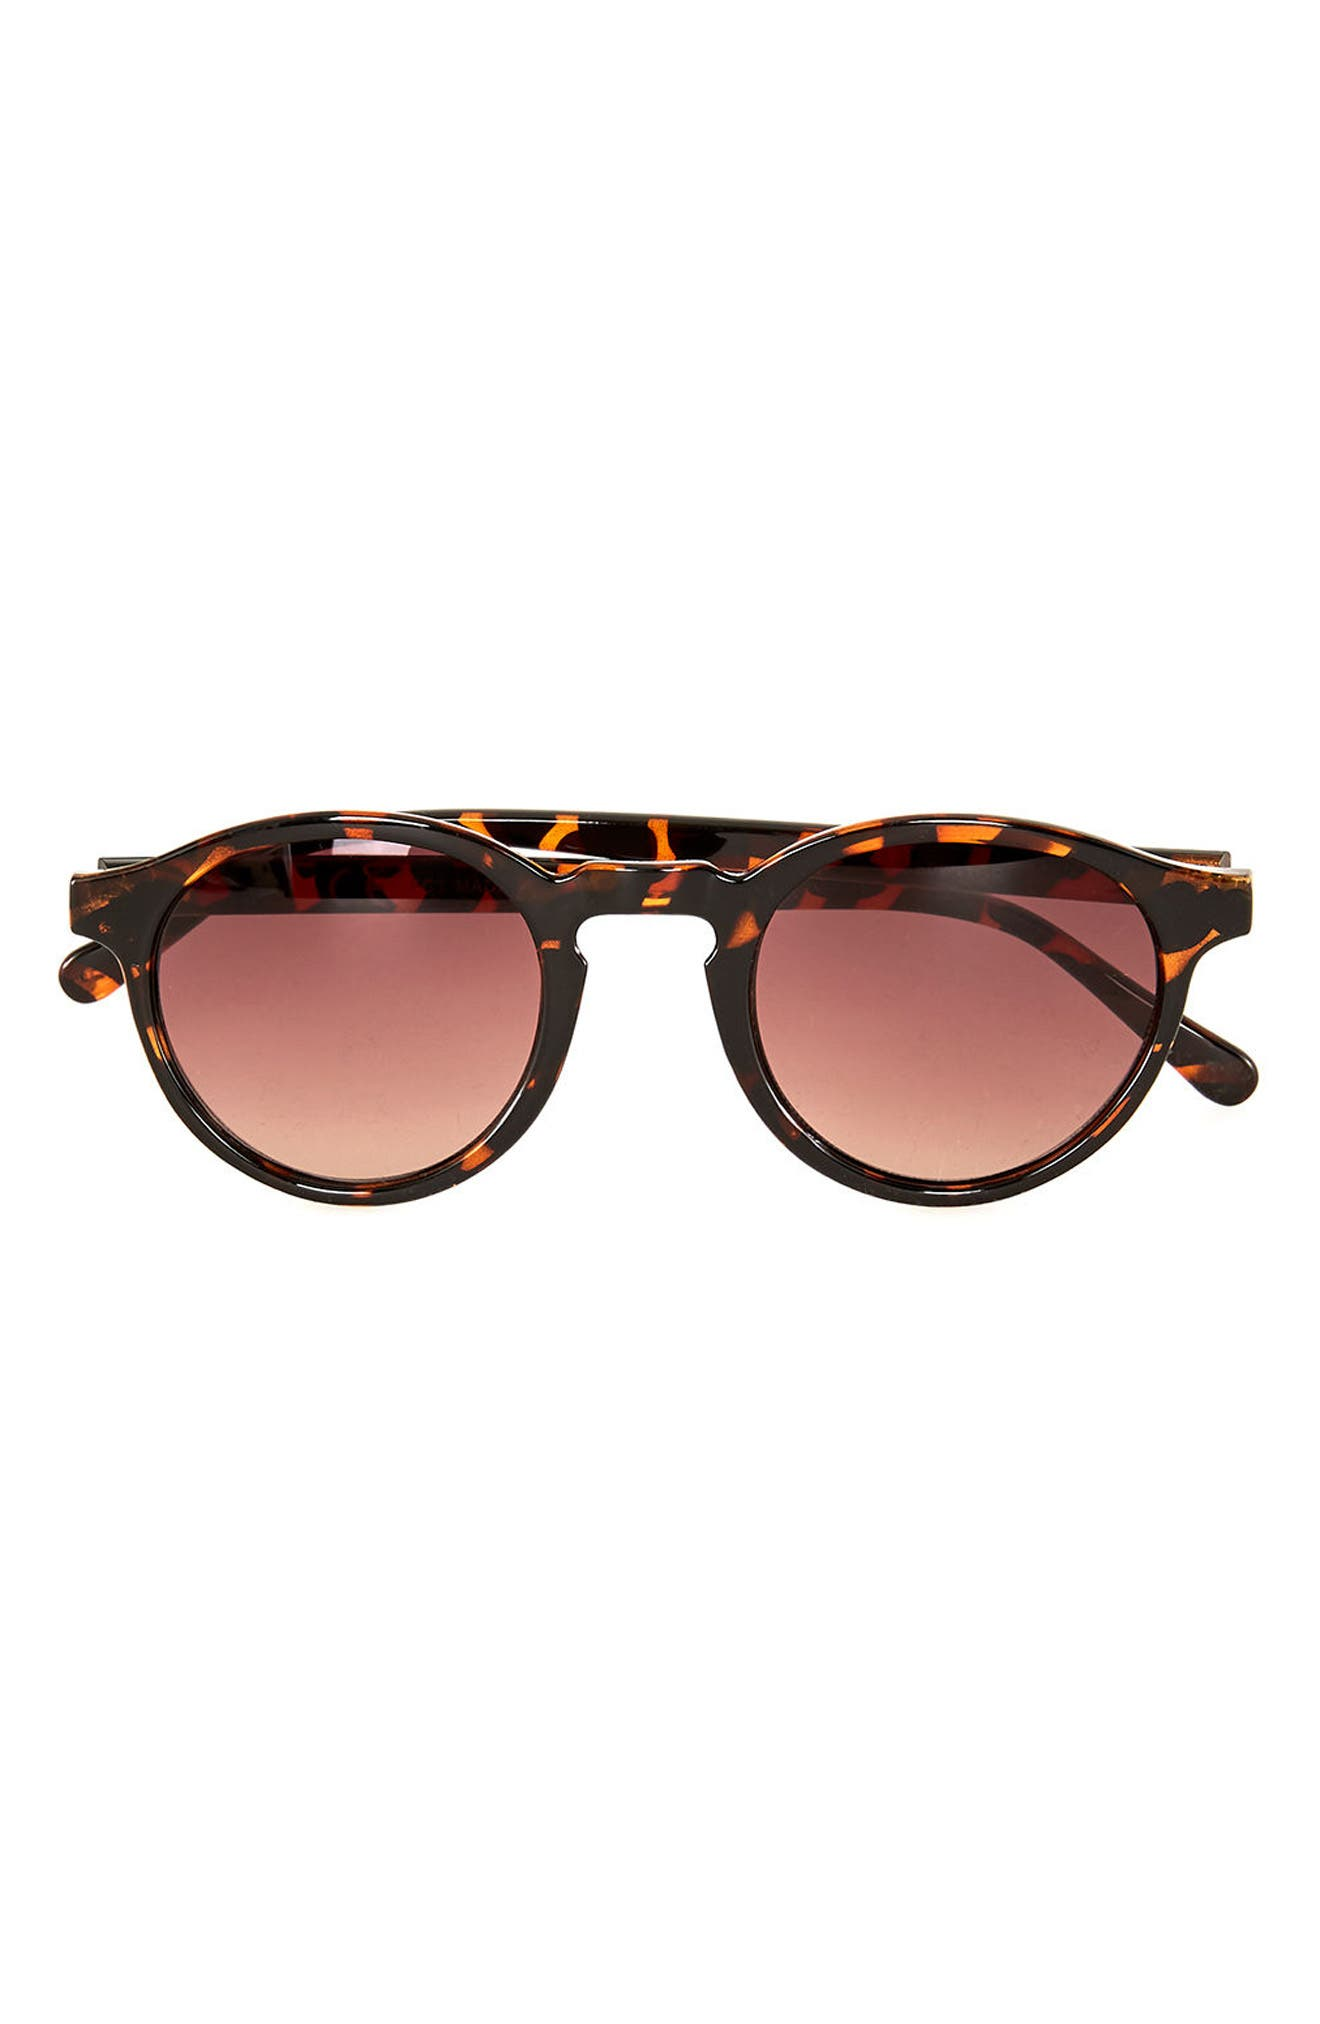 TOPMAN 44mm Round Sunglasses